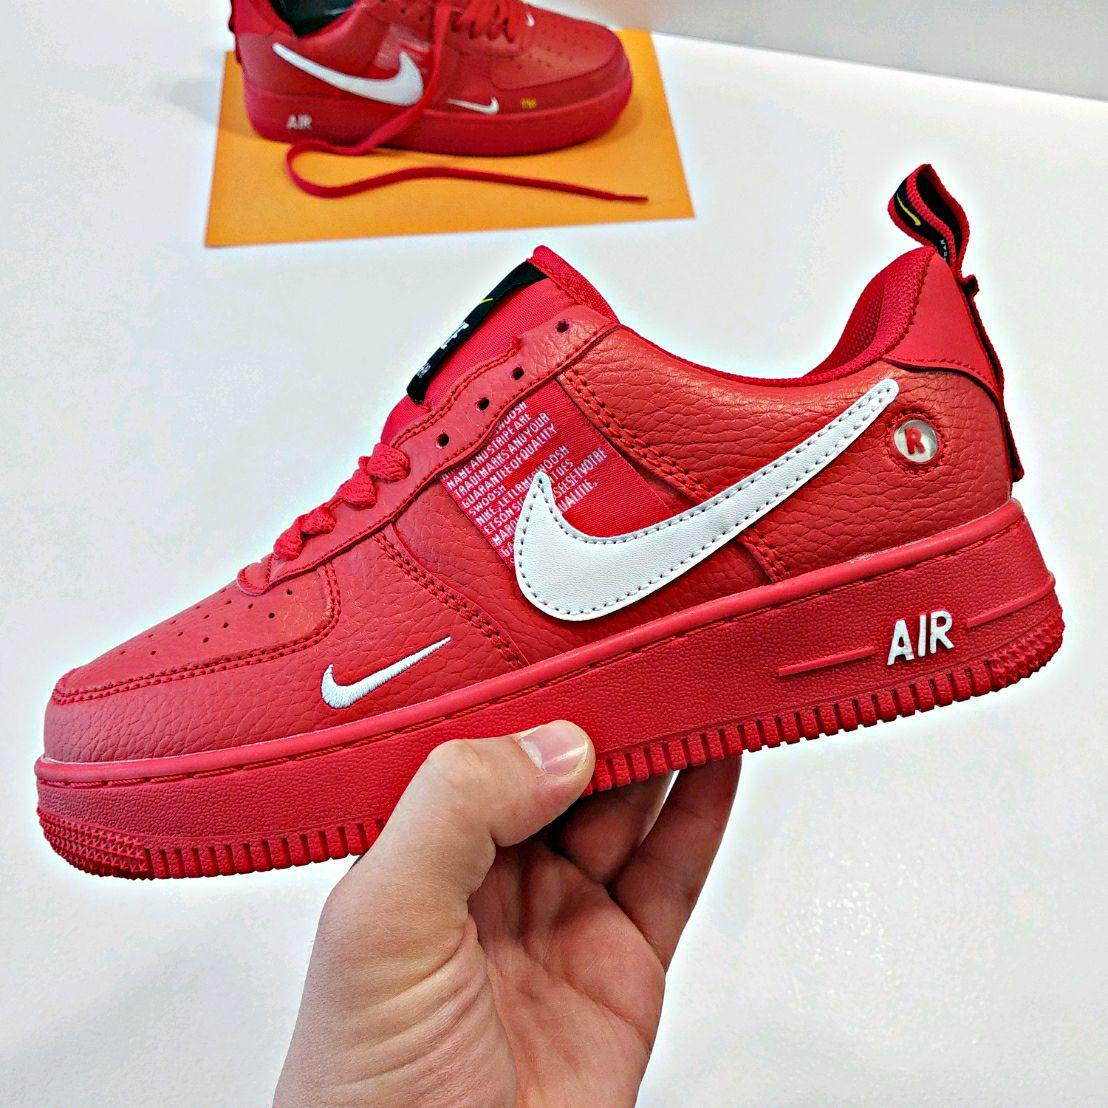 Men's Nike Air Force 1 '07 LV8 Utility October Red White 315122 111 Male Casual Shoes 315122 111c